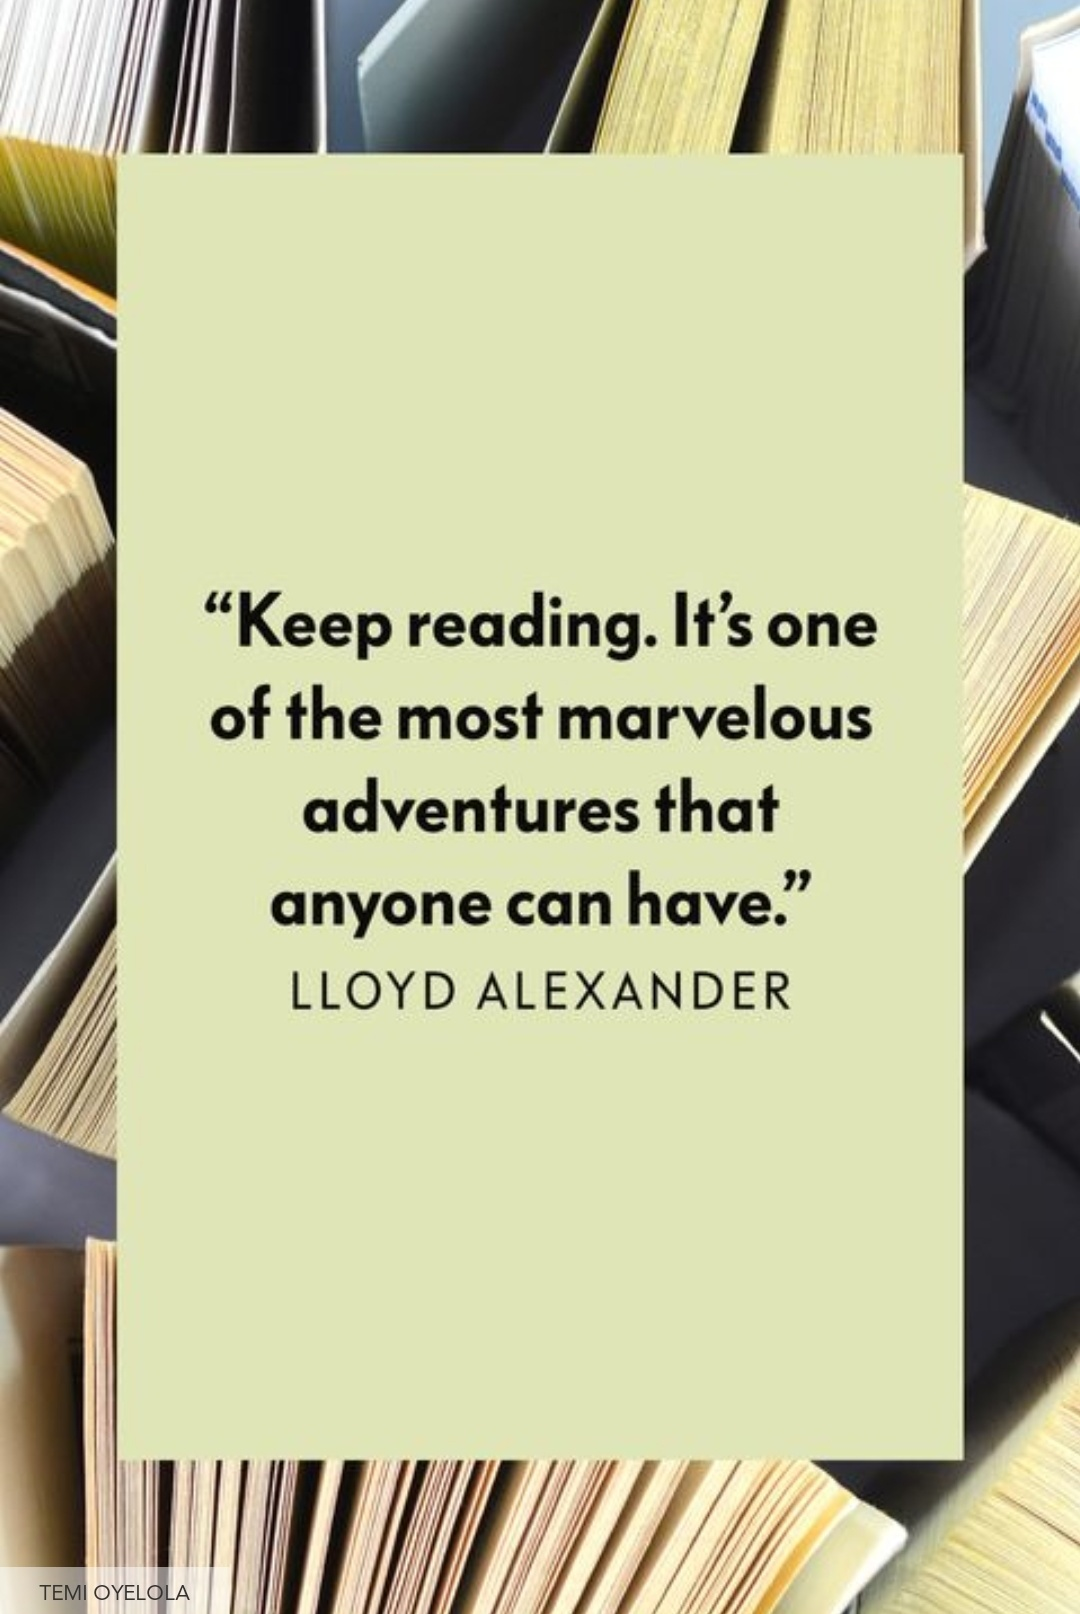 Reading Adventure quote